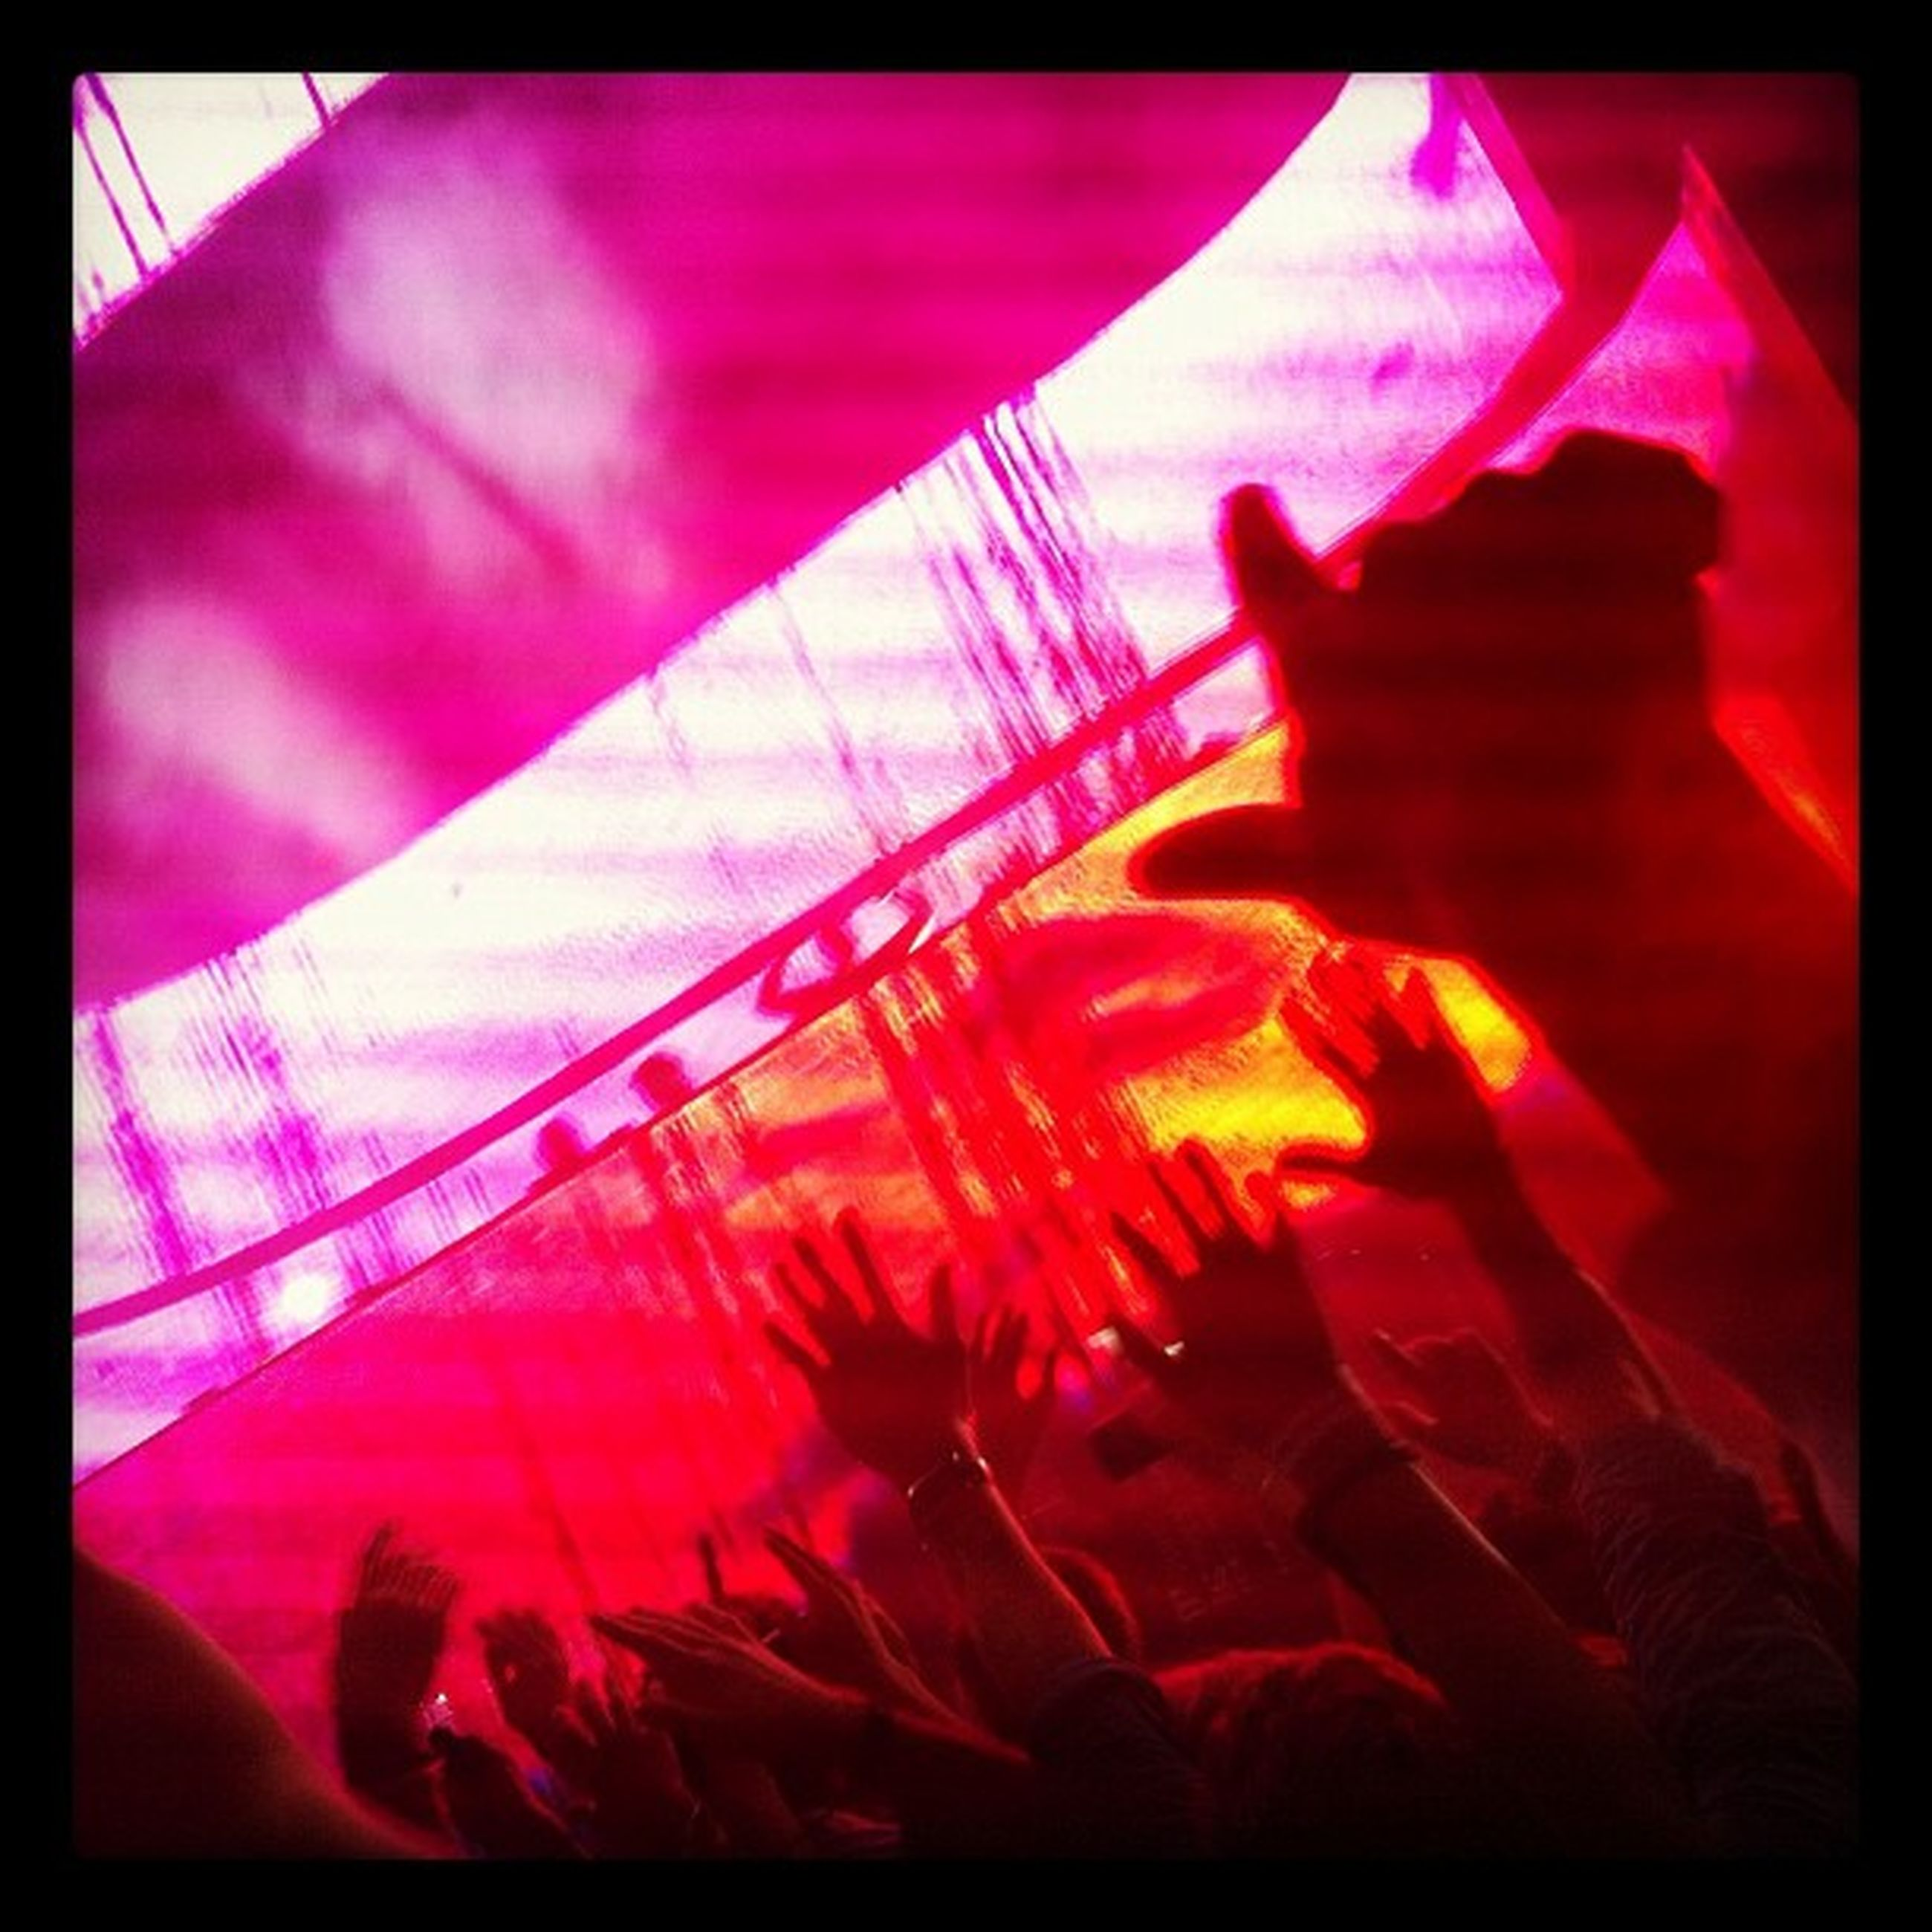 transfer print, auto post production filter, indoors, red, close-up, part of, selective focus, person, textile, unrecognizable person, high angle view, day, arts culture and entertainment, pink color, music, vignette